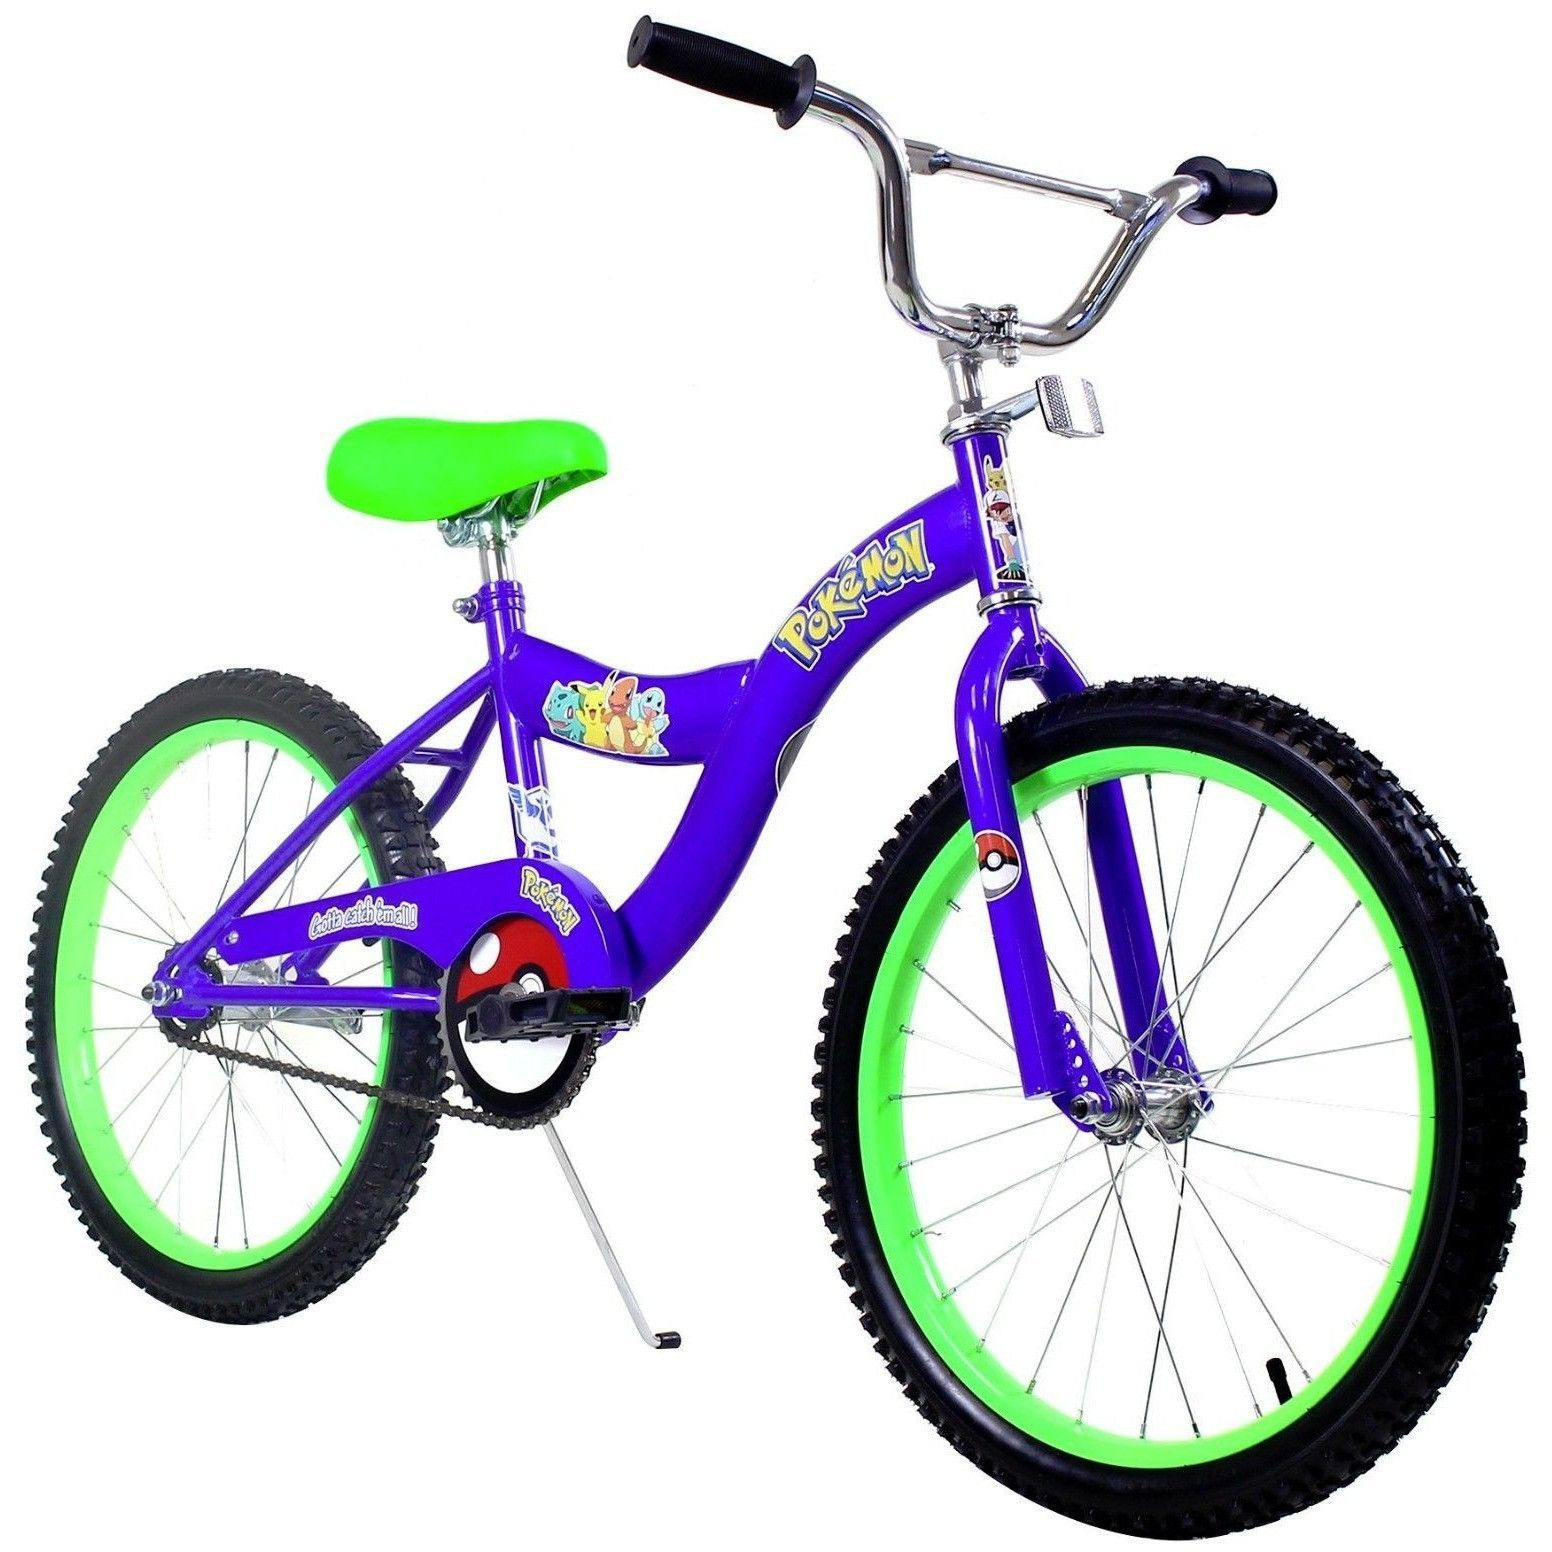 "Kids 16"" Bicycle Bike Blue Includes Pokemon Stickers NEW"